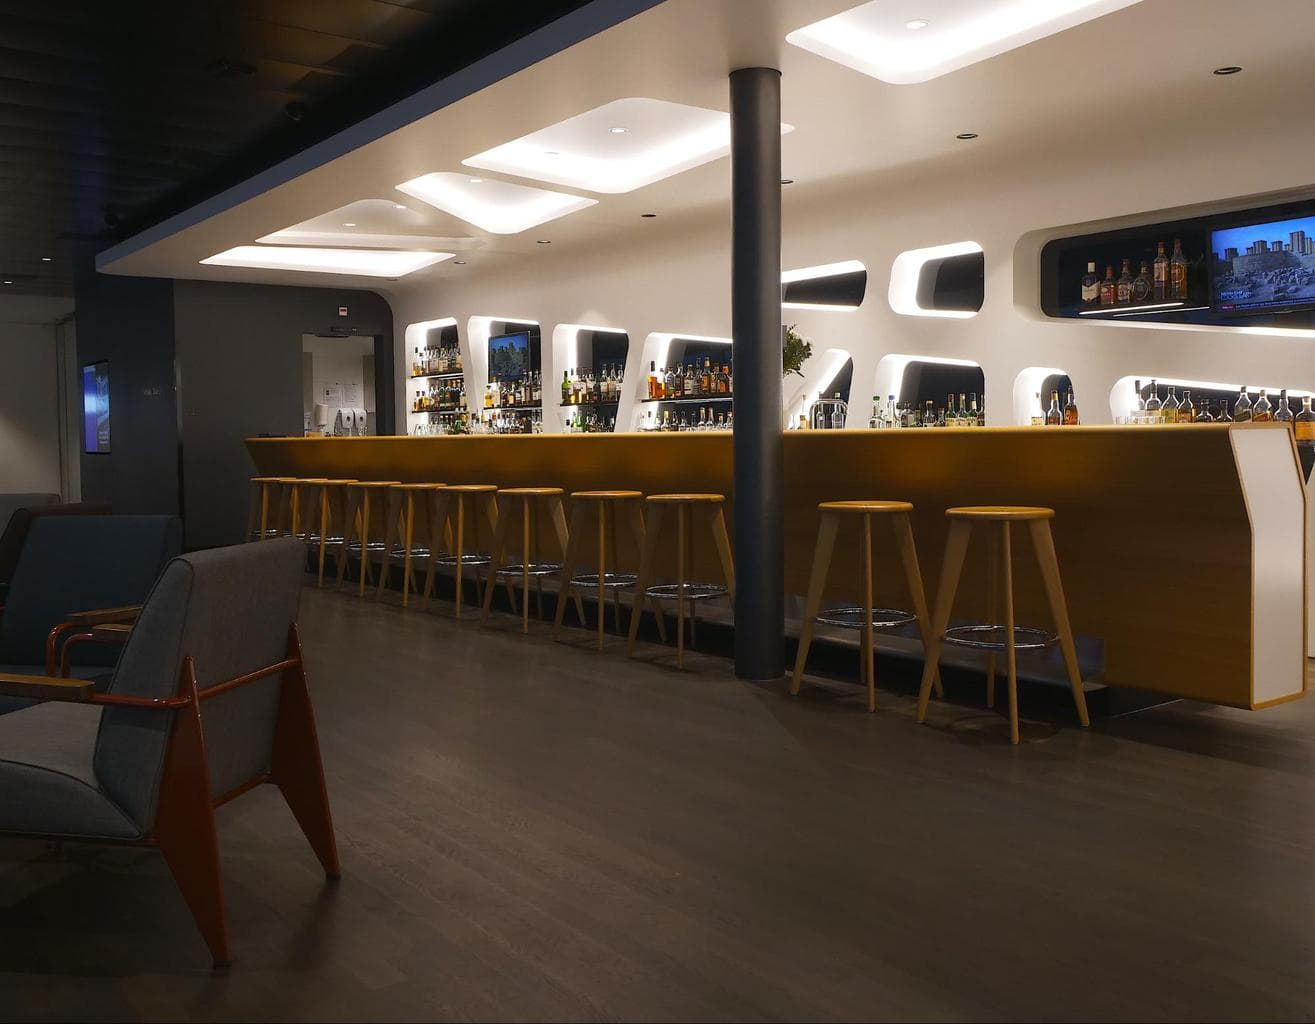 Whisky bar inside the Senator Lounge at Zurich Airport